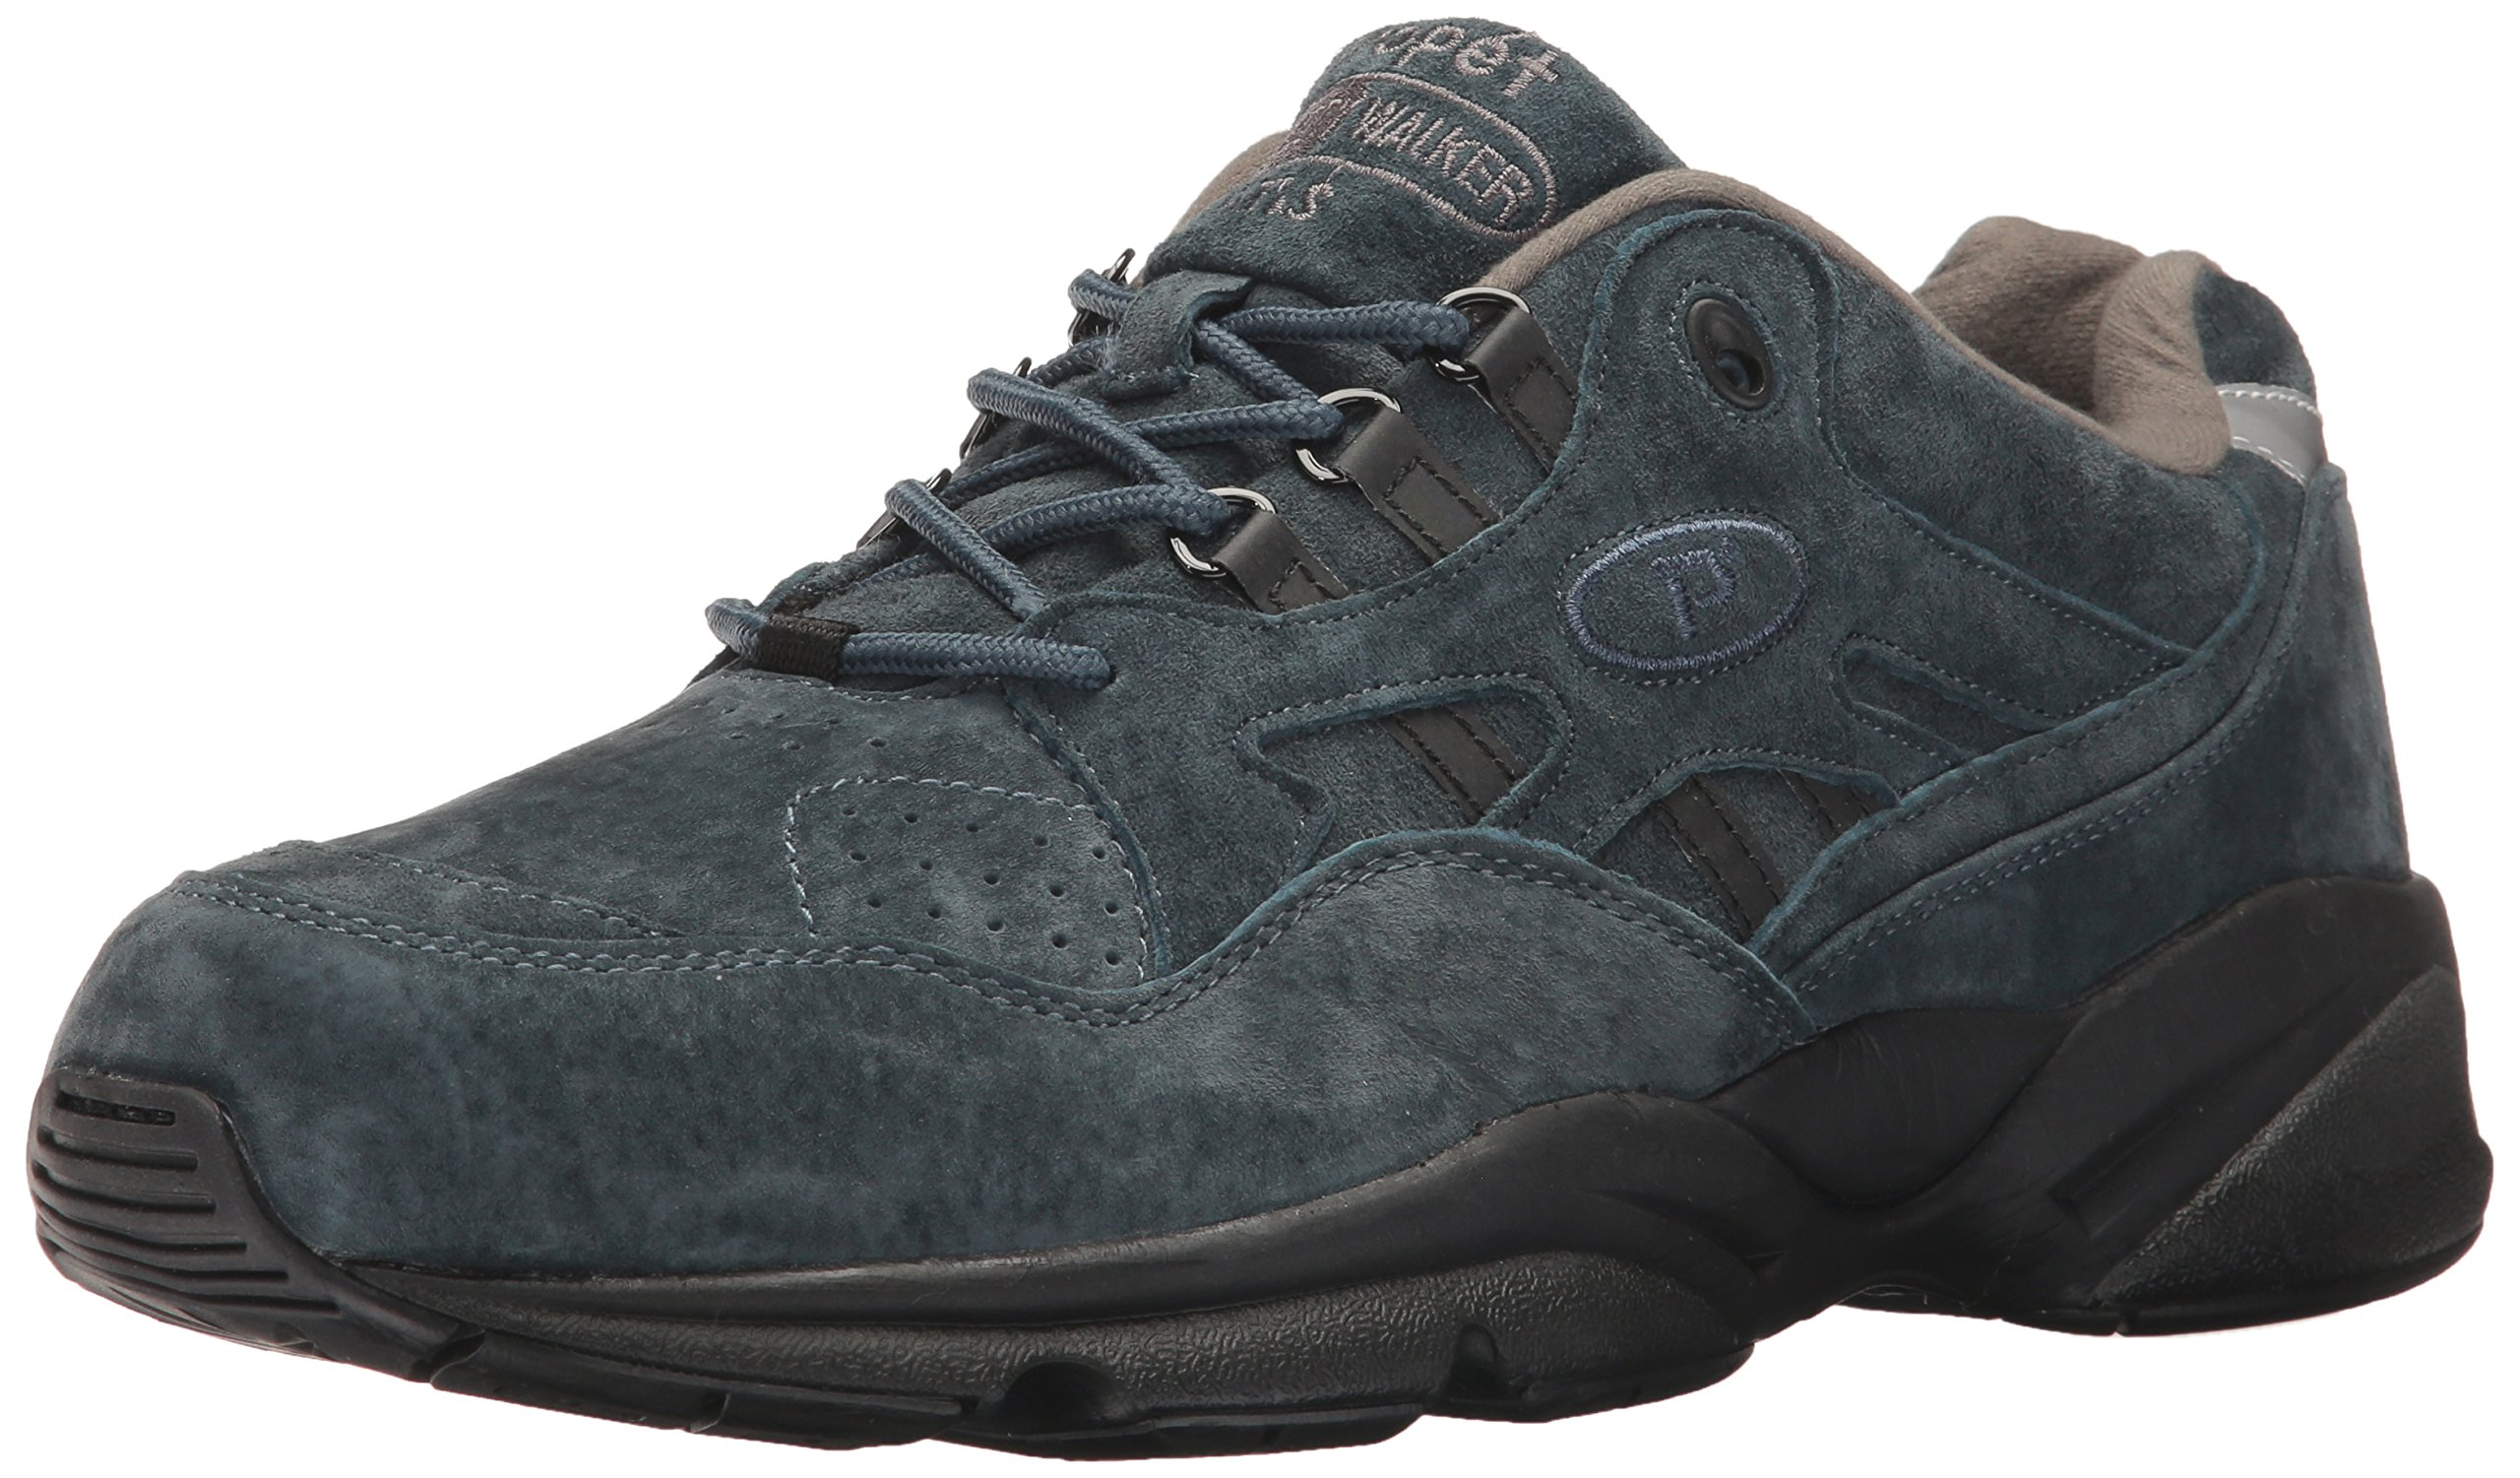 Propet Men's Stability Walker Walking Shoe, Denim Suede, 11.5 5E US by Propét